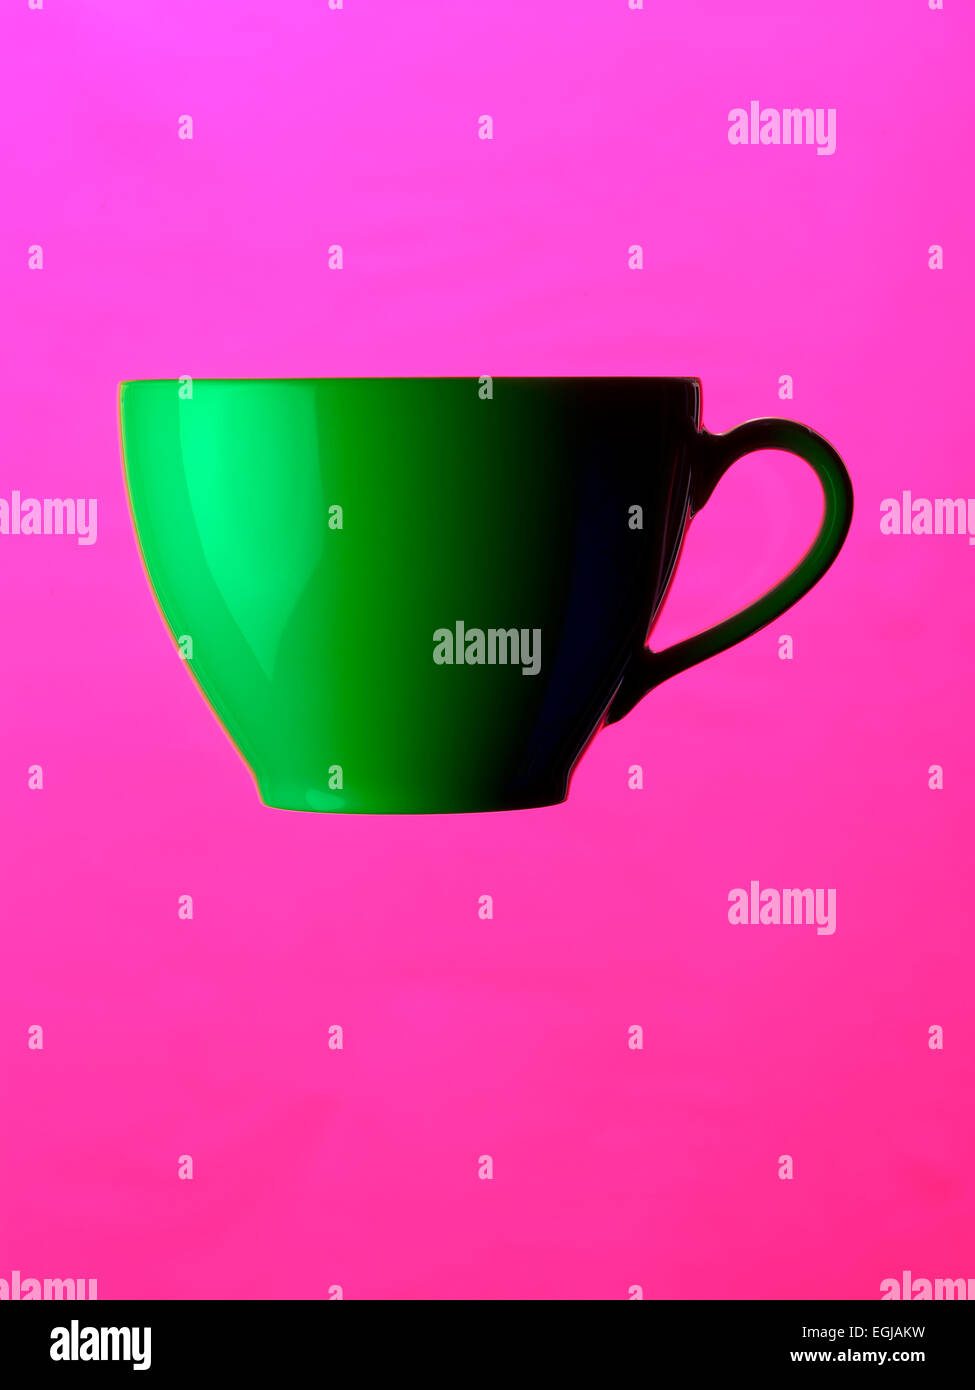 tea cup green on pink ground - Stock Image